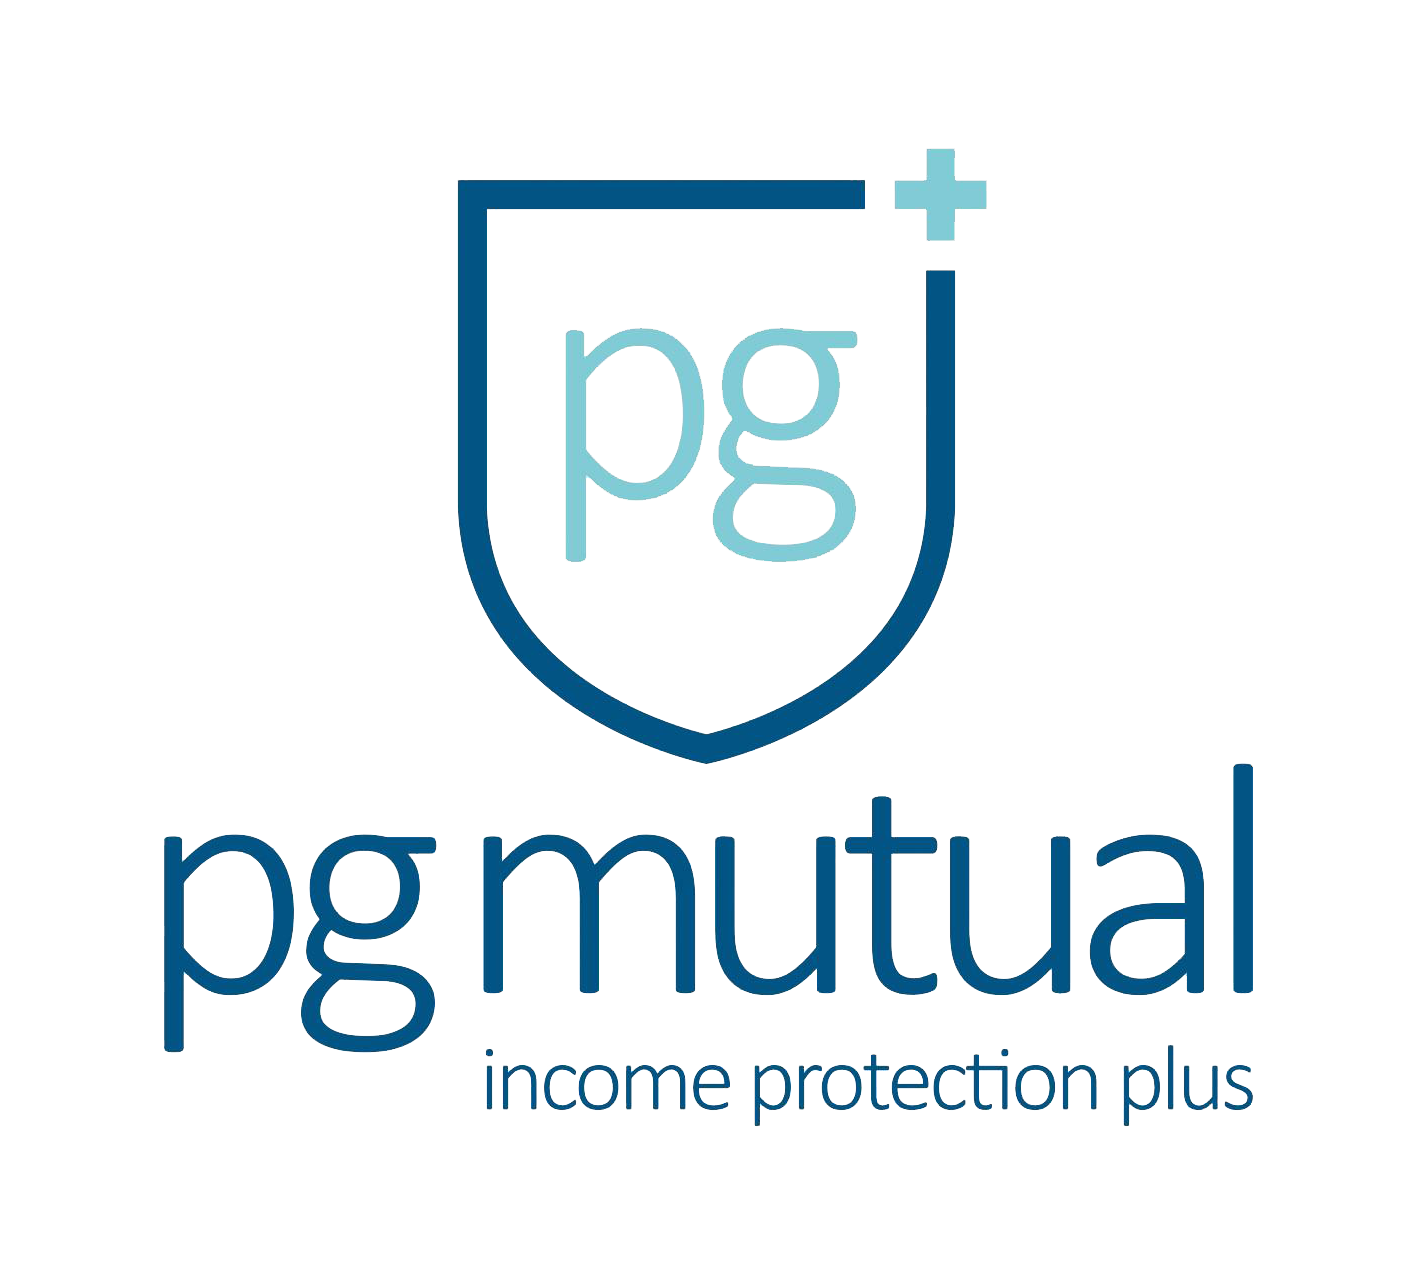 get income protection with pg mutual plus and our membership